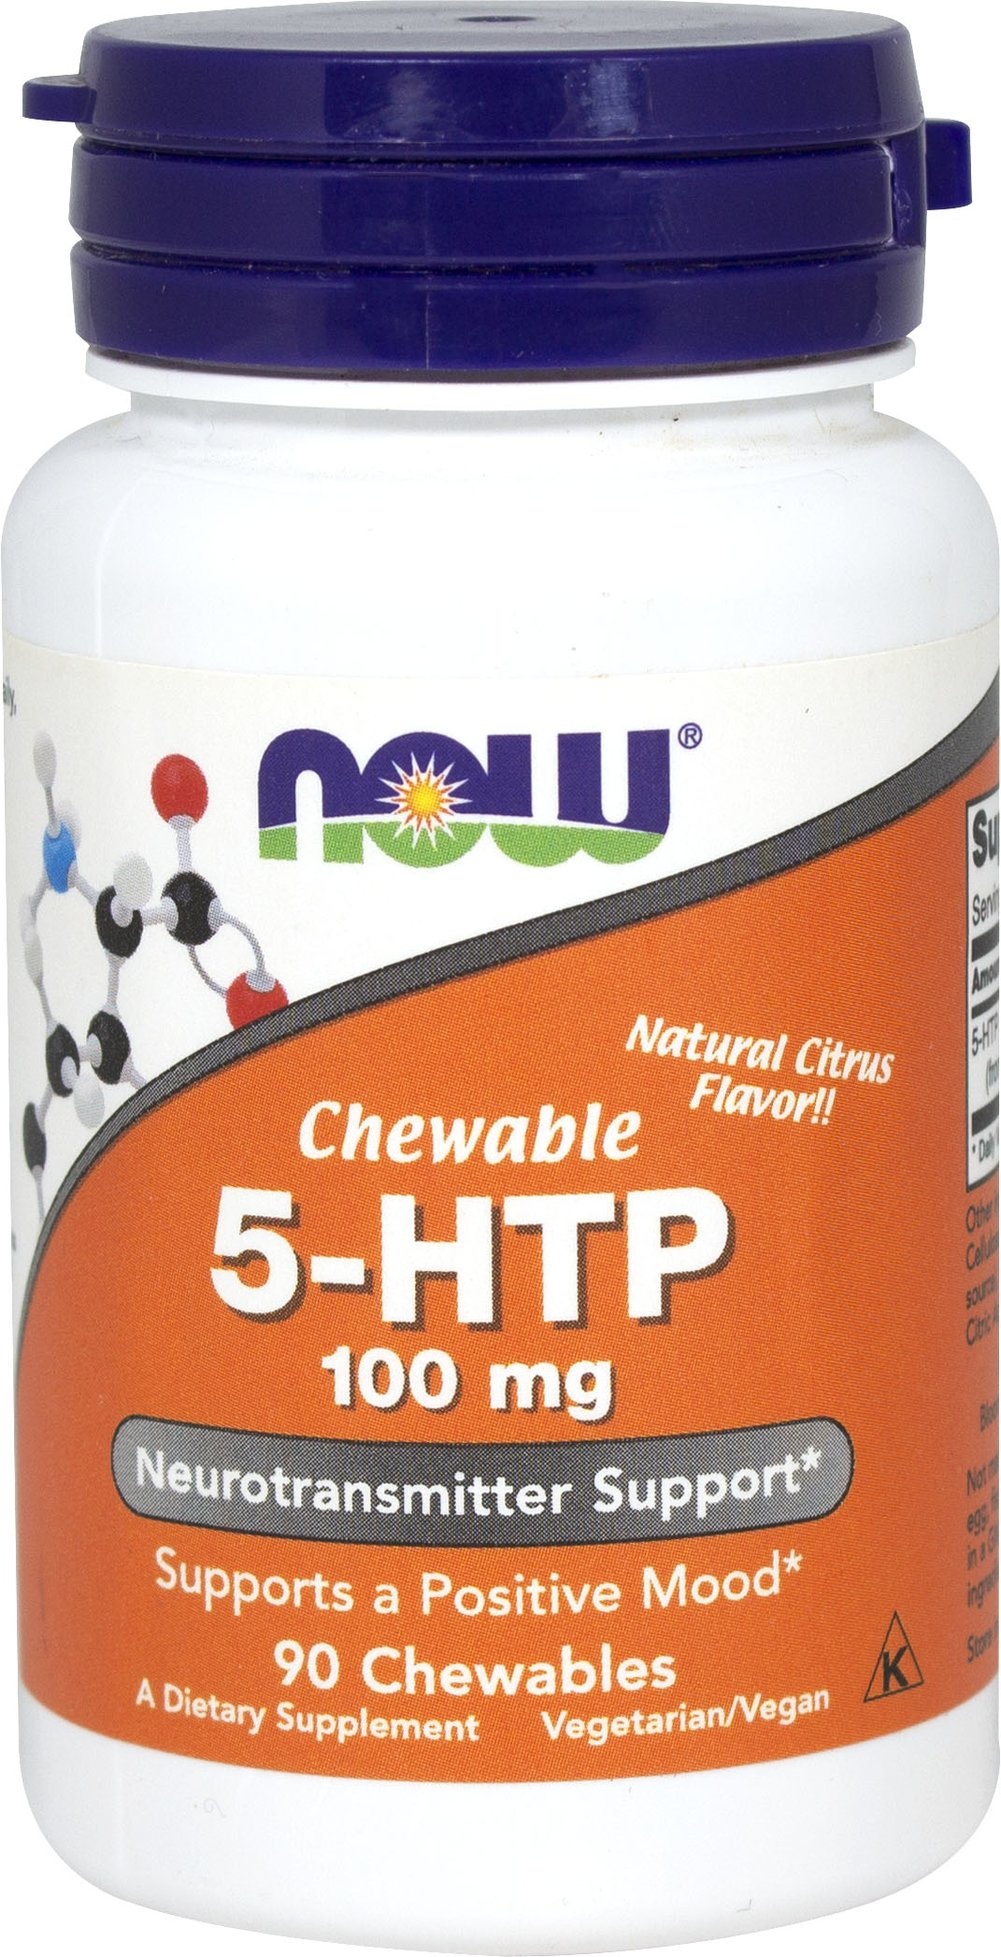 5-HTP 100 MG Chewable <P><B>From the Manufacturer's label</P><P>NOW® Foods Chewable 5-HTP,  the intermediate metabolite between the amino acid L-tryptophan and serotonin, is extracted from the bean of an African plant (Griffonia simplicifolia). NOW® Foods Chewable 5-HTP has a natural citrus flavor in a vegetarian formula.</P>  90 Chewables 100 mg $16.99